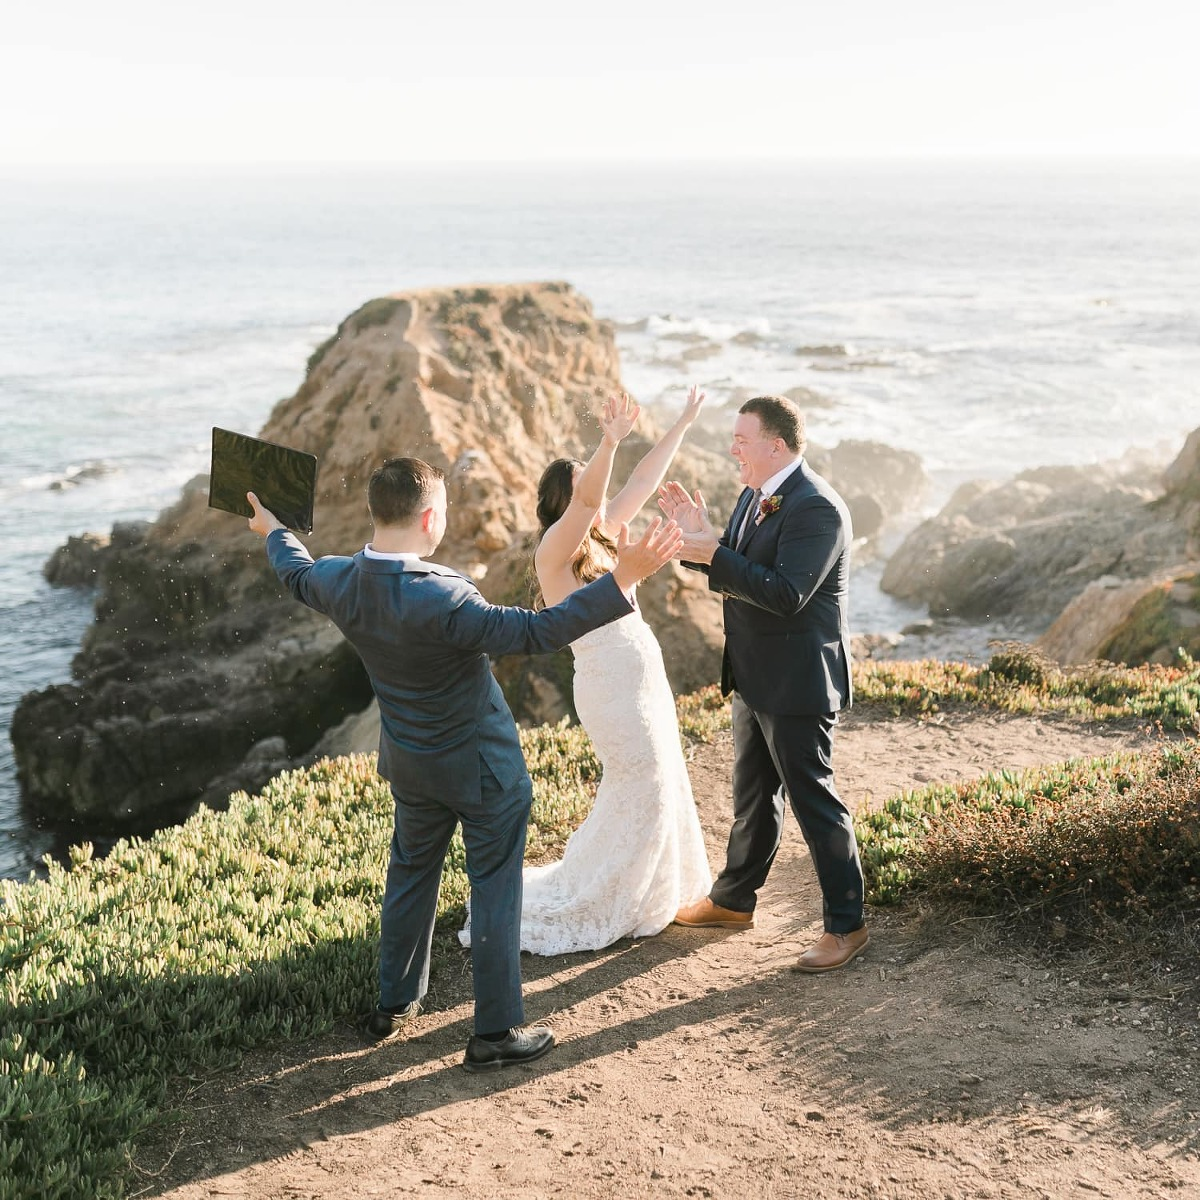 California Elopement Package information and Big Sur elopement photo